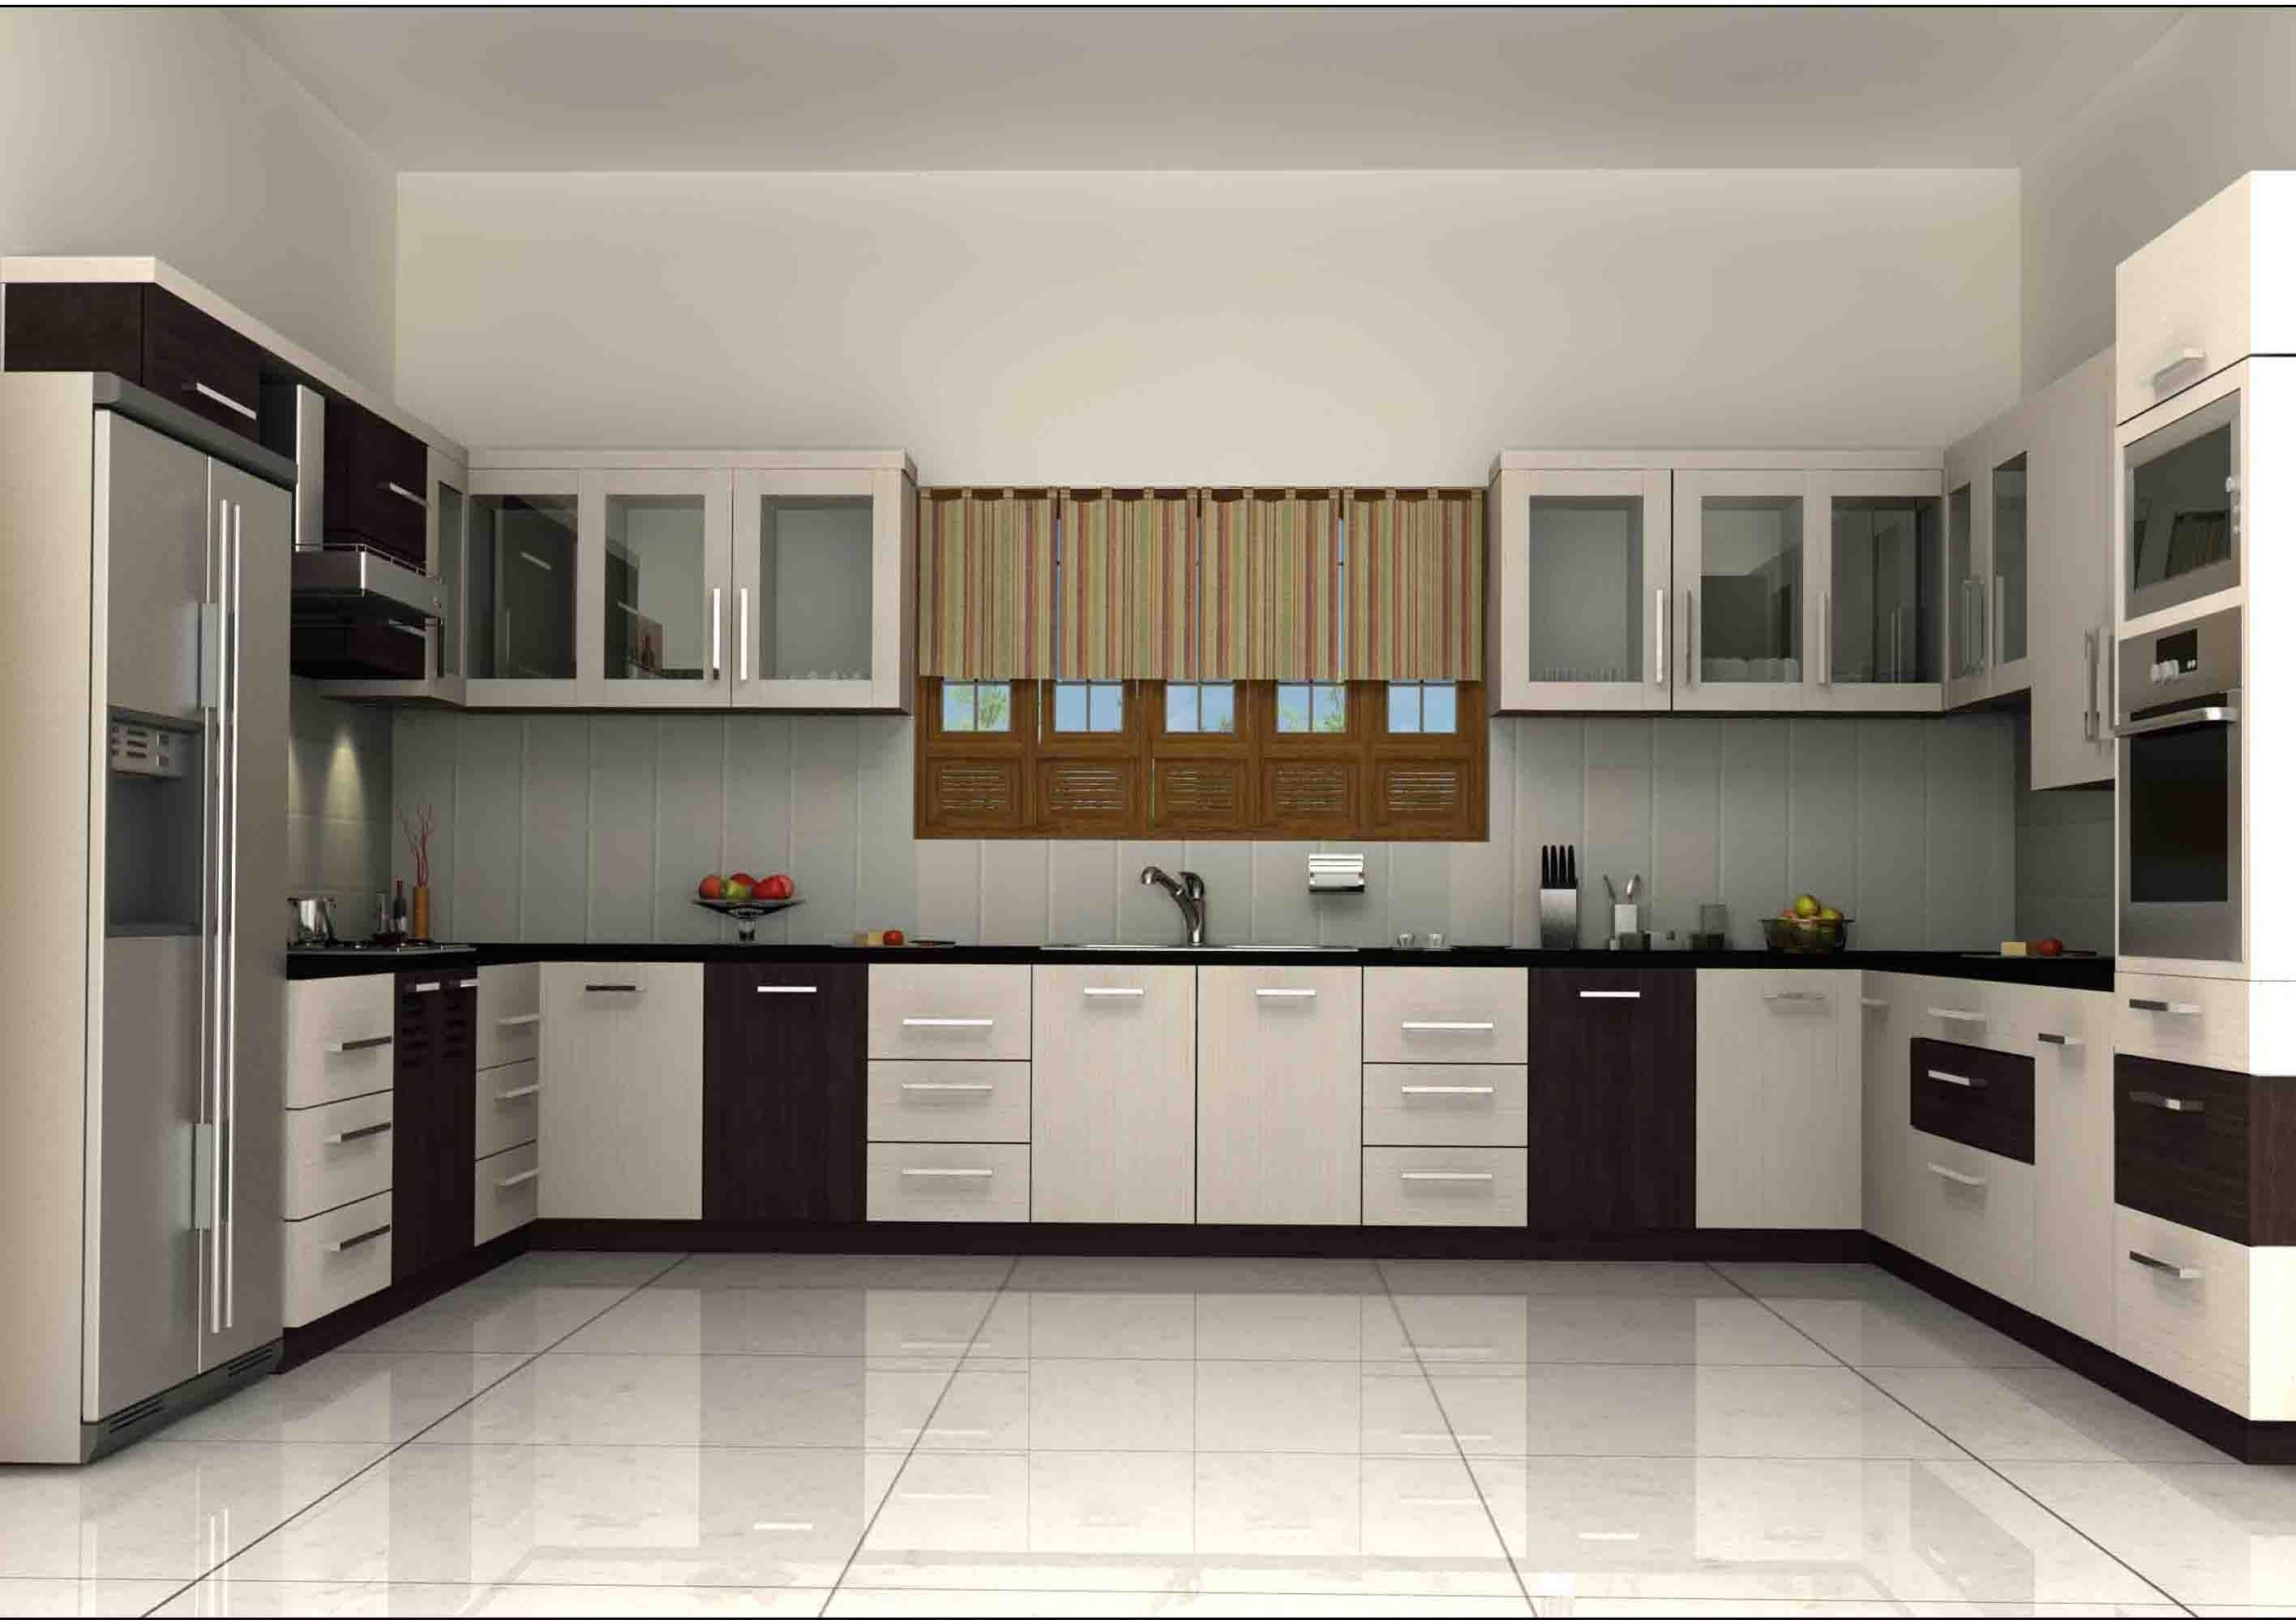 Kitchen Design Ideas Indian Kitchen Room Design Interior Design Kitchen Small Interior Design Kitchen